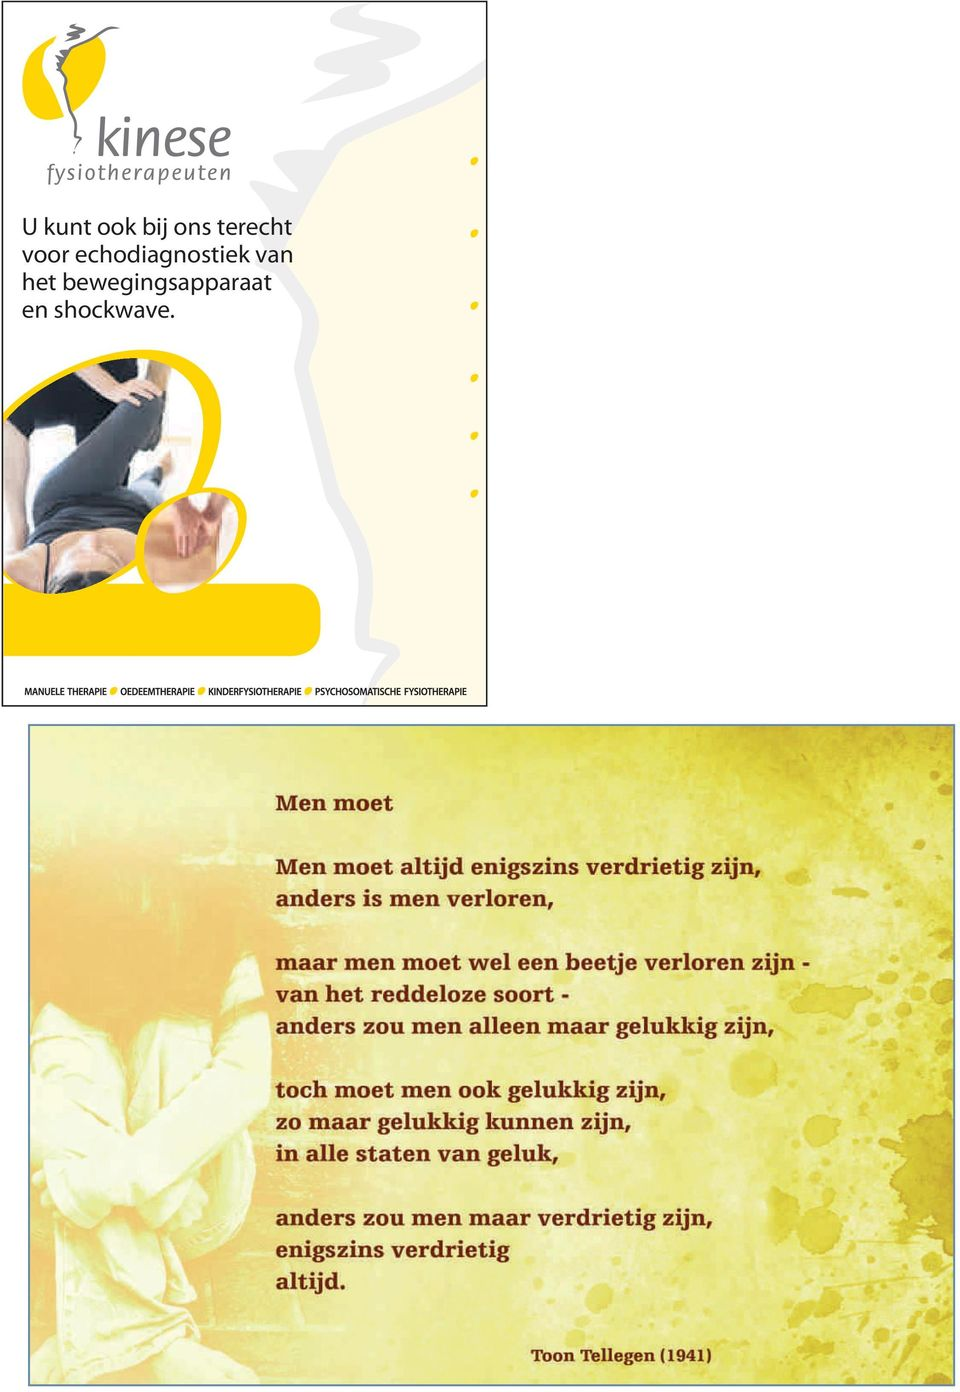 Appingedam (0596) 61 30 66 Woonzorgcomplex Paasweide De Paasweide 72 9901 EZ Appingedam (0596) 61 30 66 Fam.